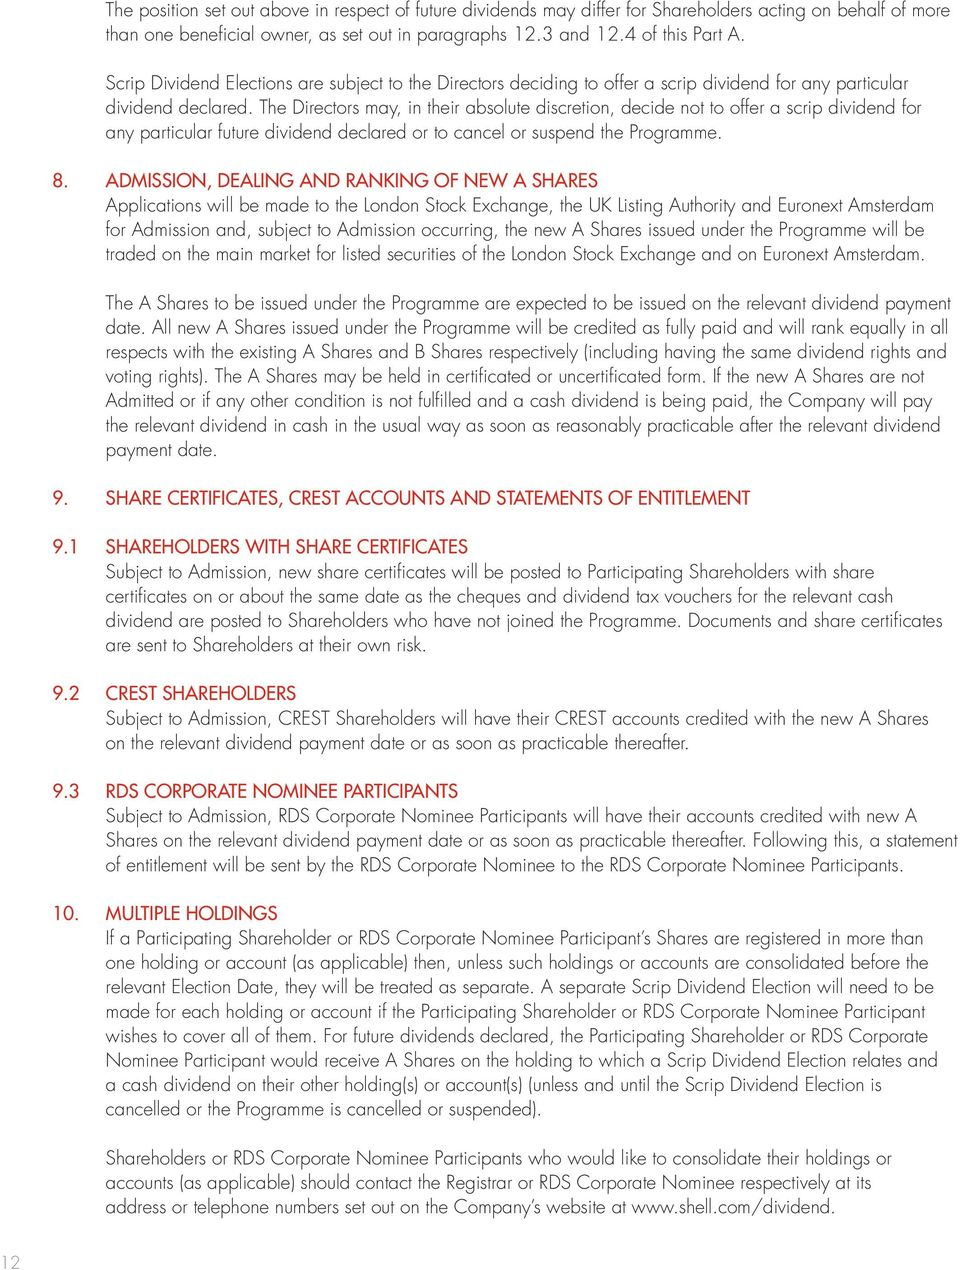 ROYAL DUTCH SHELL PLC SCRIP DIVIDEND PROGRAMME TERMS AND